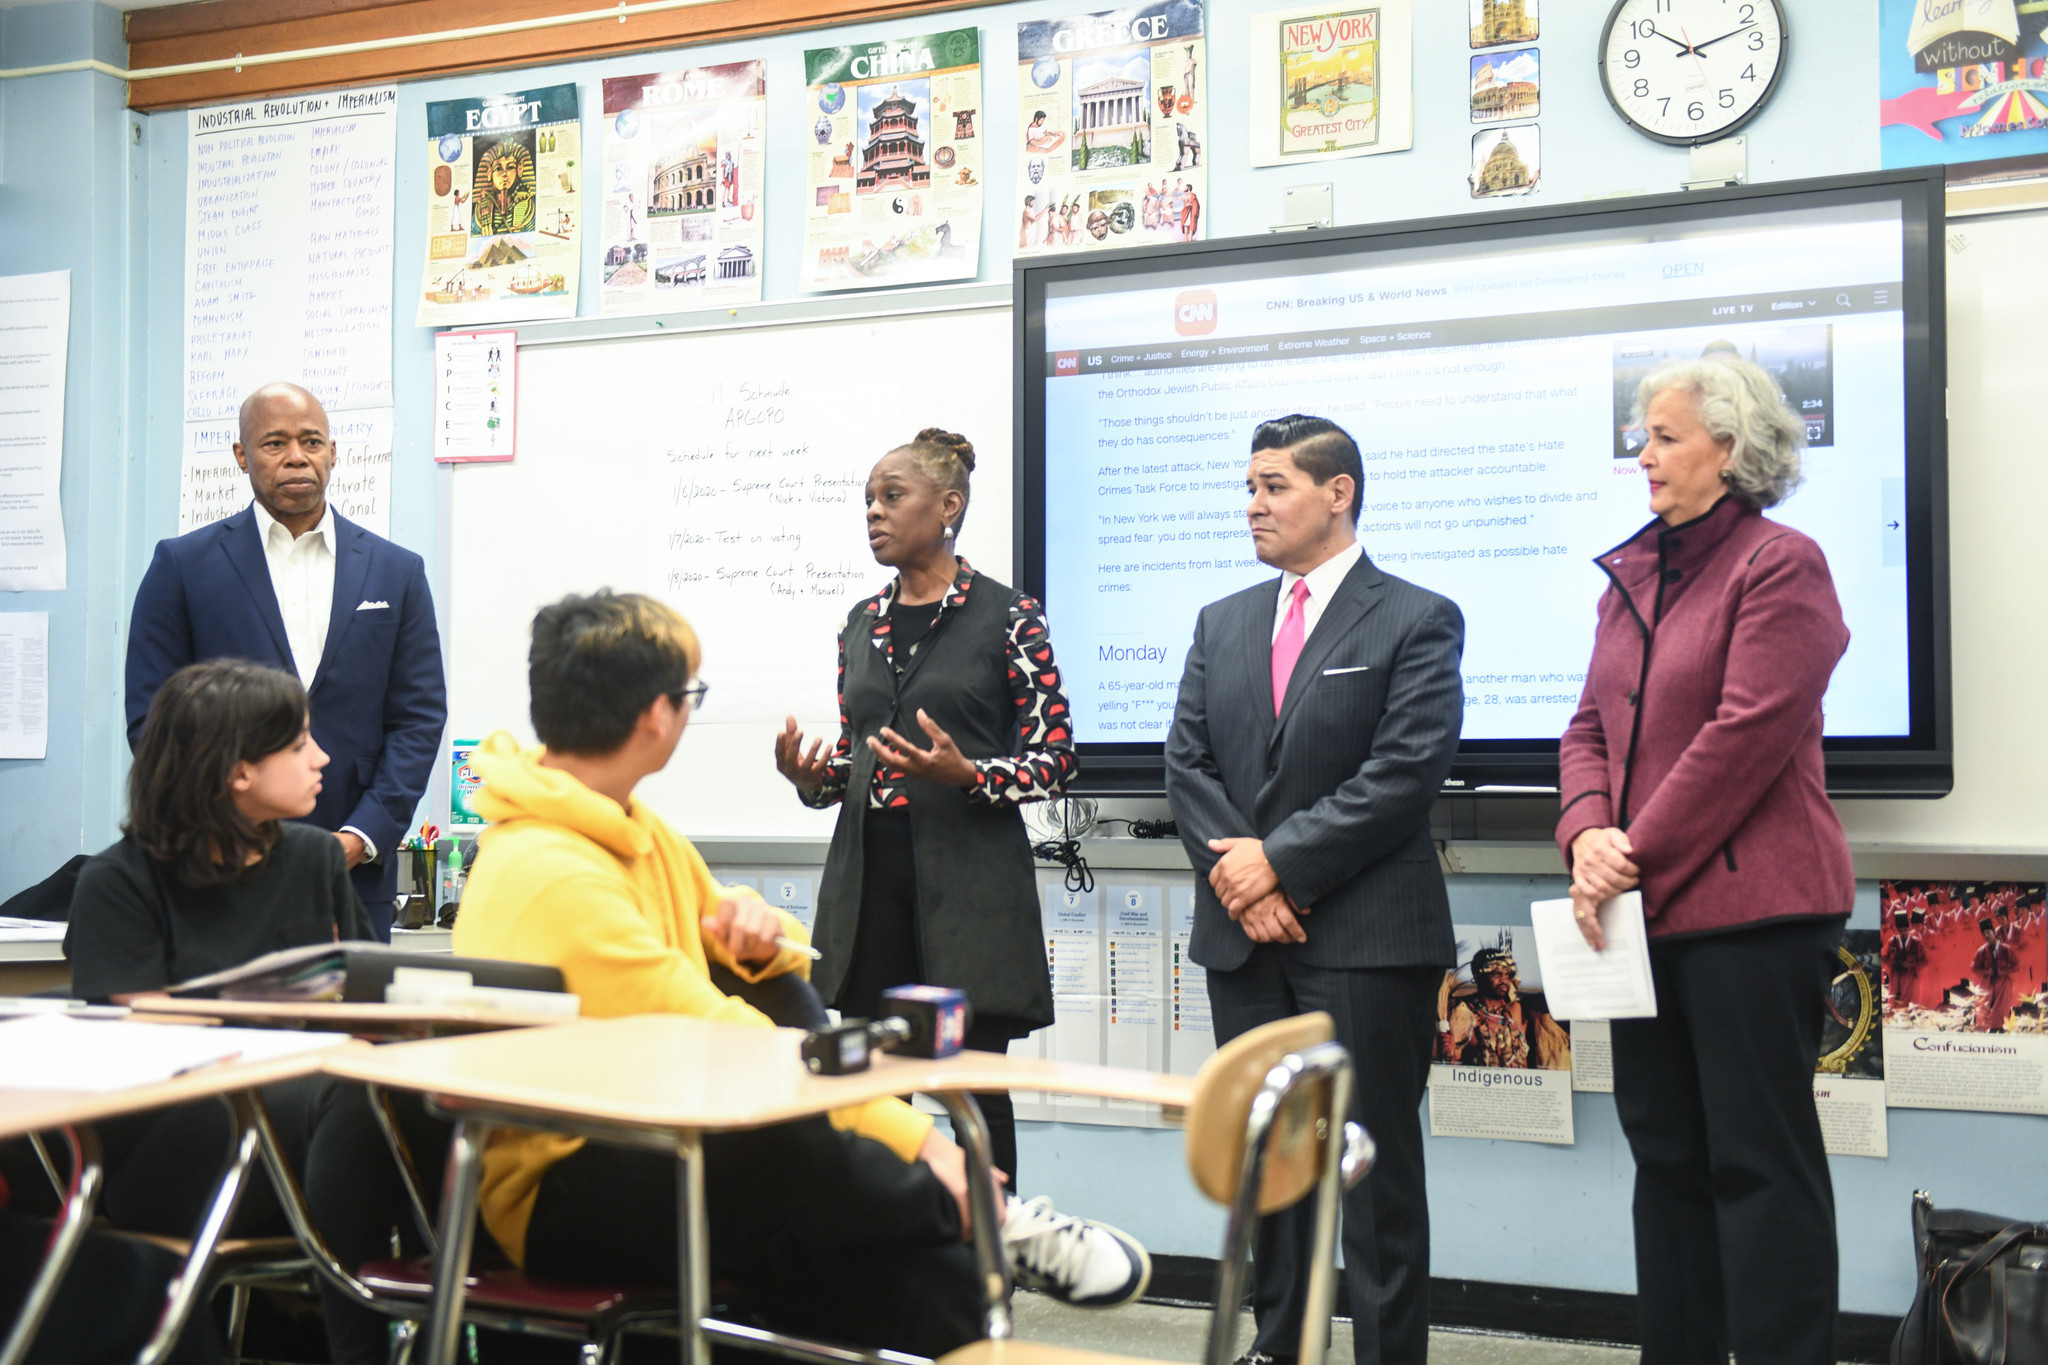 NYC Chancellor, First Lady tout anti-bias education efforts in Brooklyn school visit